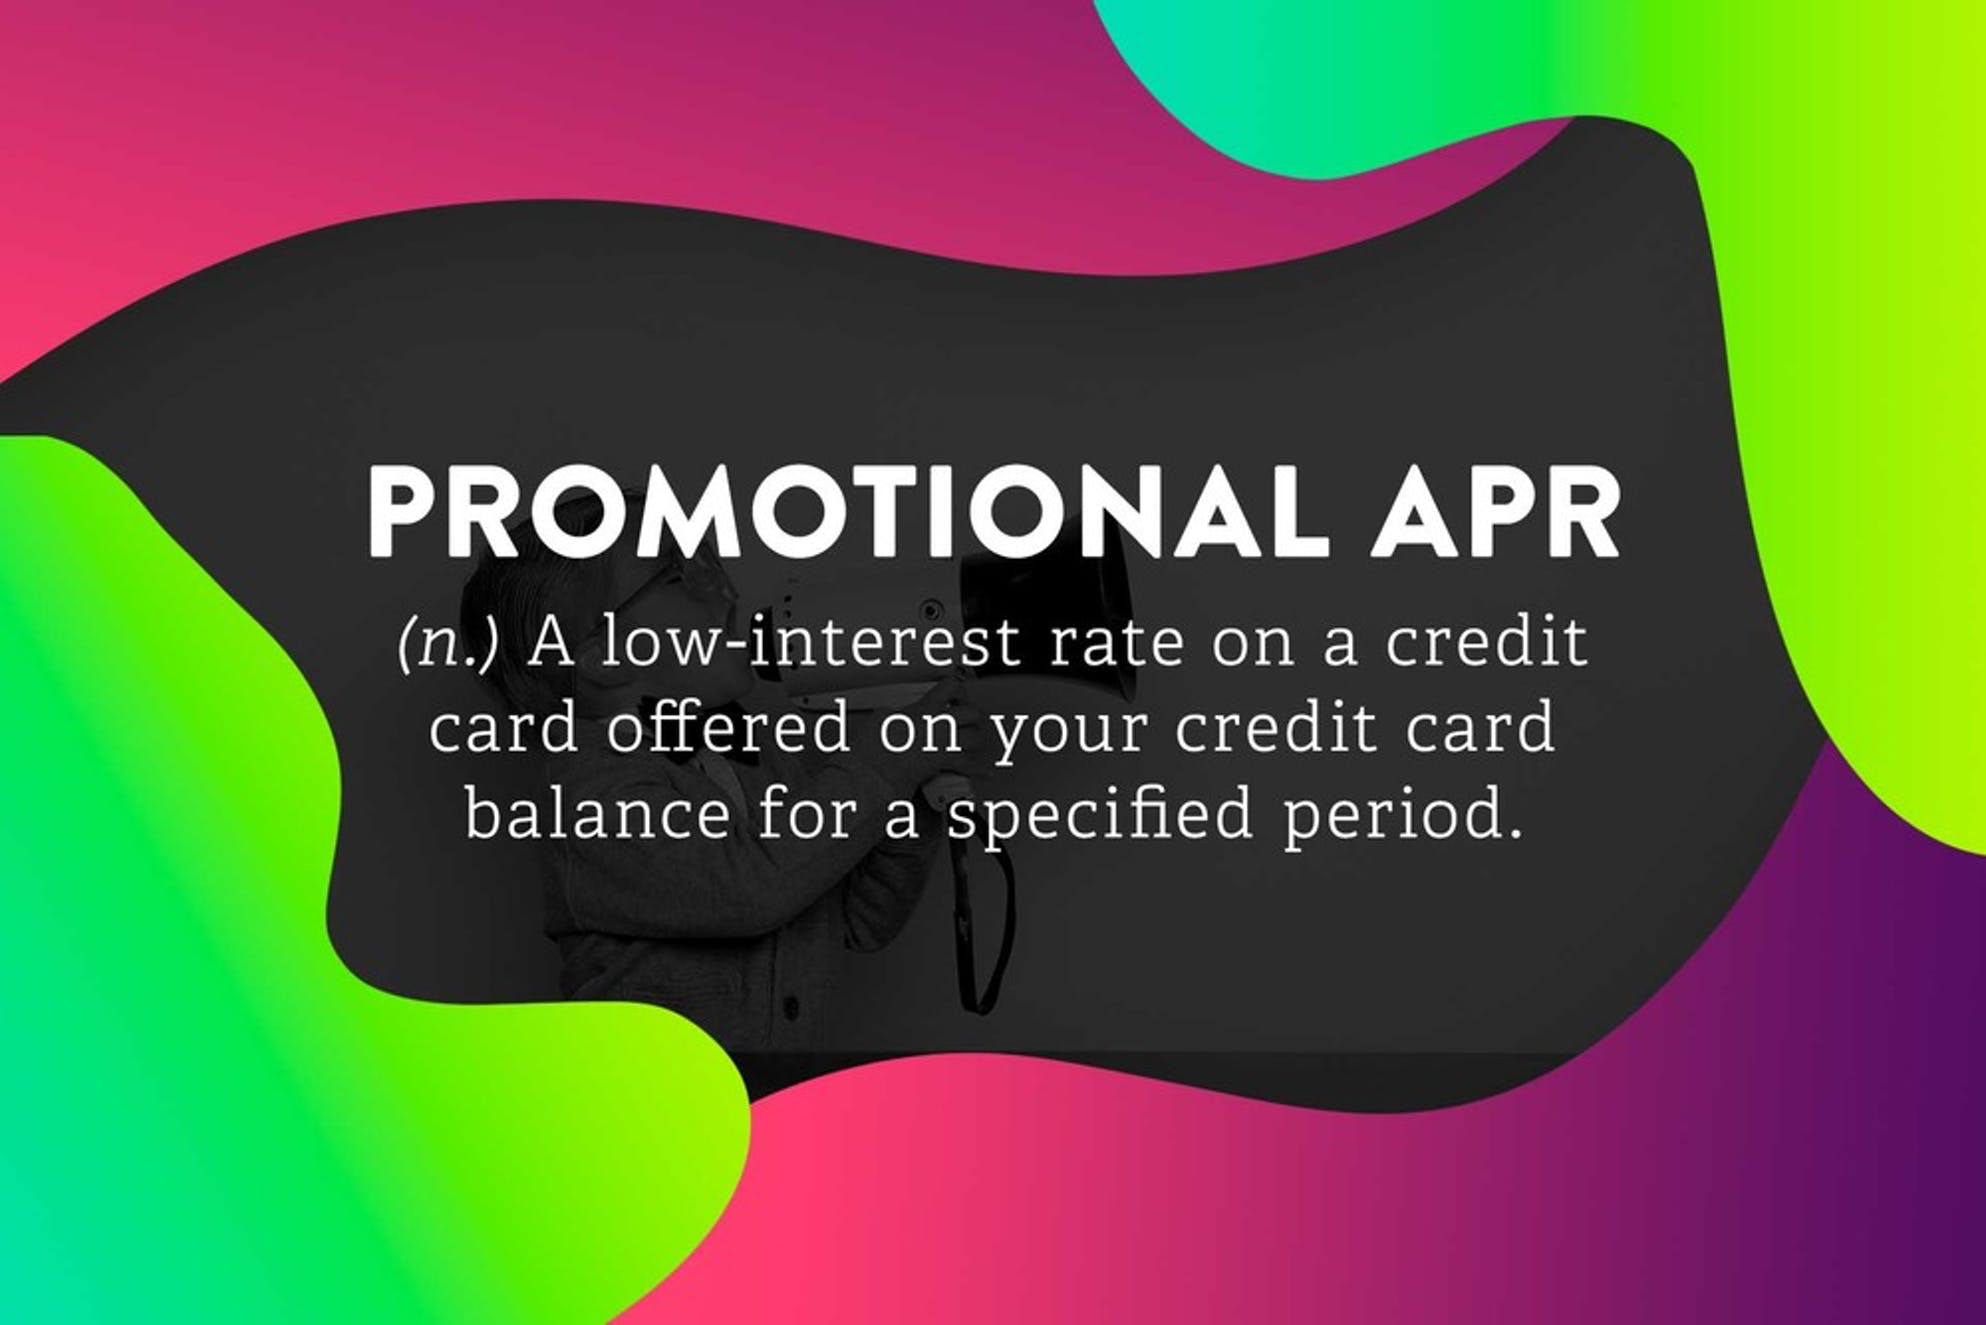 The definition of Promotional APR